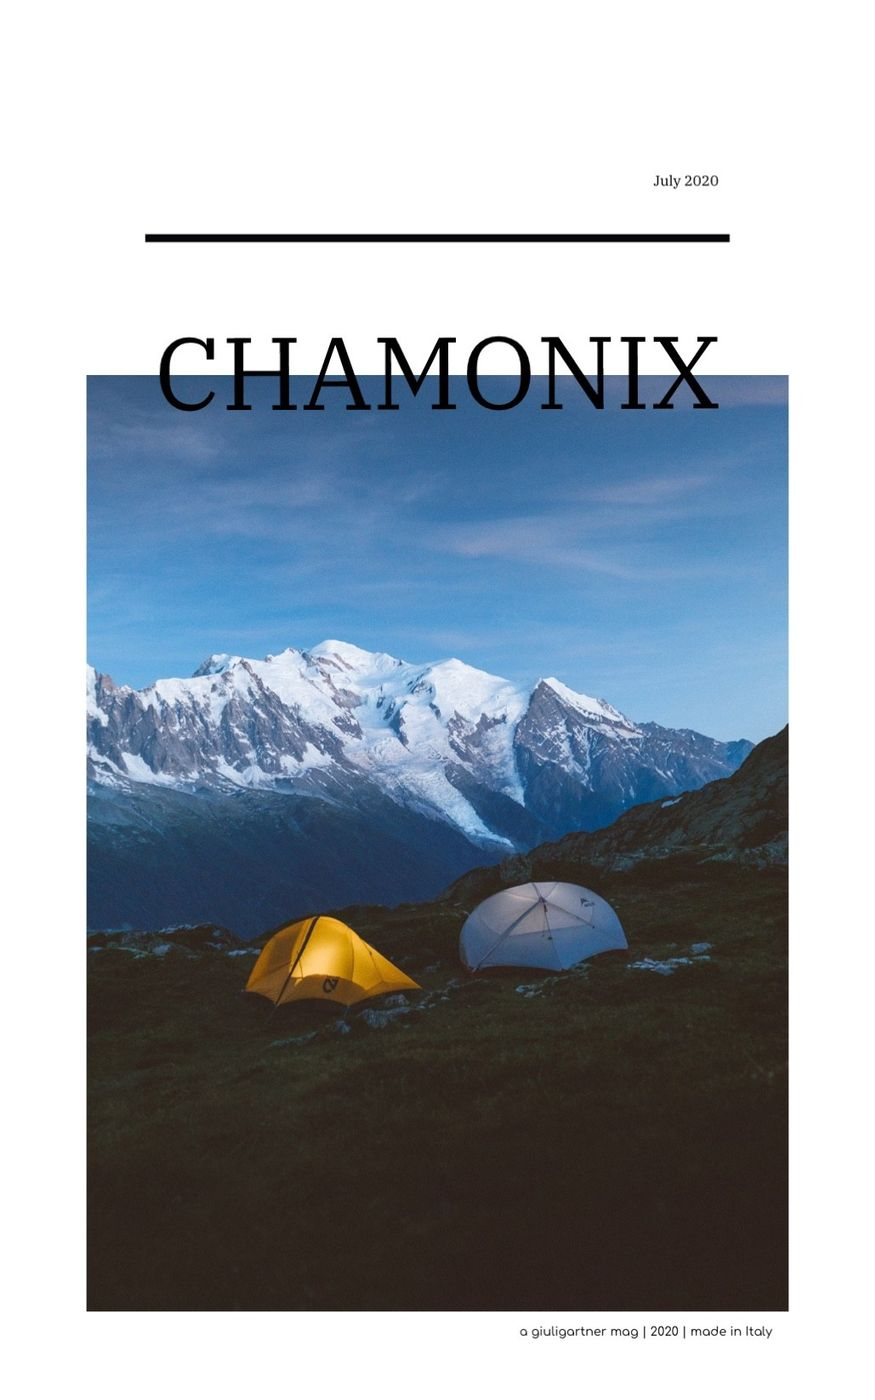 Chamonix, a quaint little town tucked in the french alps just across the Italian border. It is a mecca for outdoor enthusiasts, the people who meet here all share the love for mountaineering and hiking. The peak of the rugged mountain chain has attracted many photographers like myself. Hope you enjoy this collection.